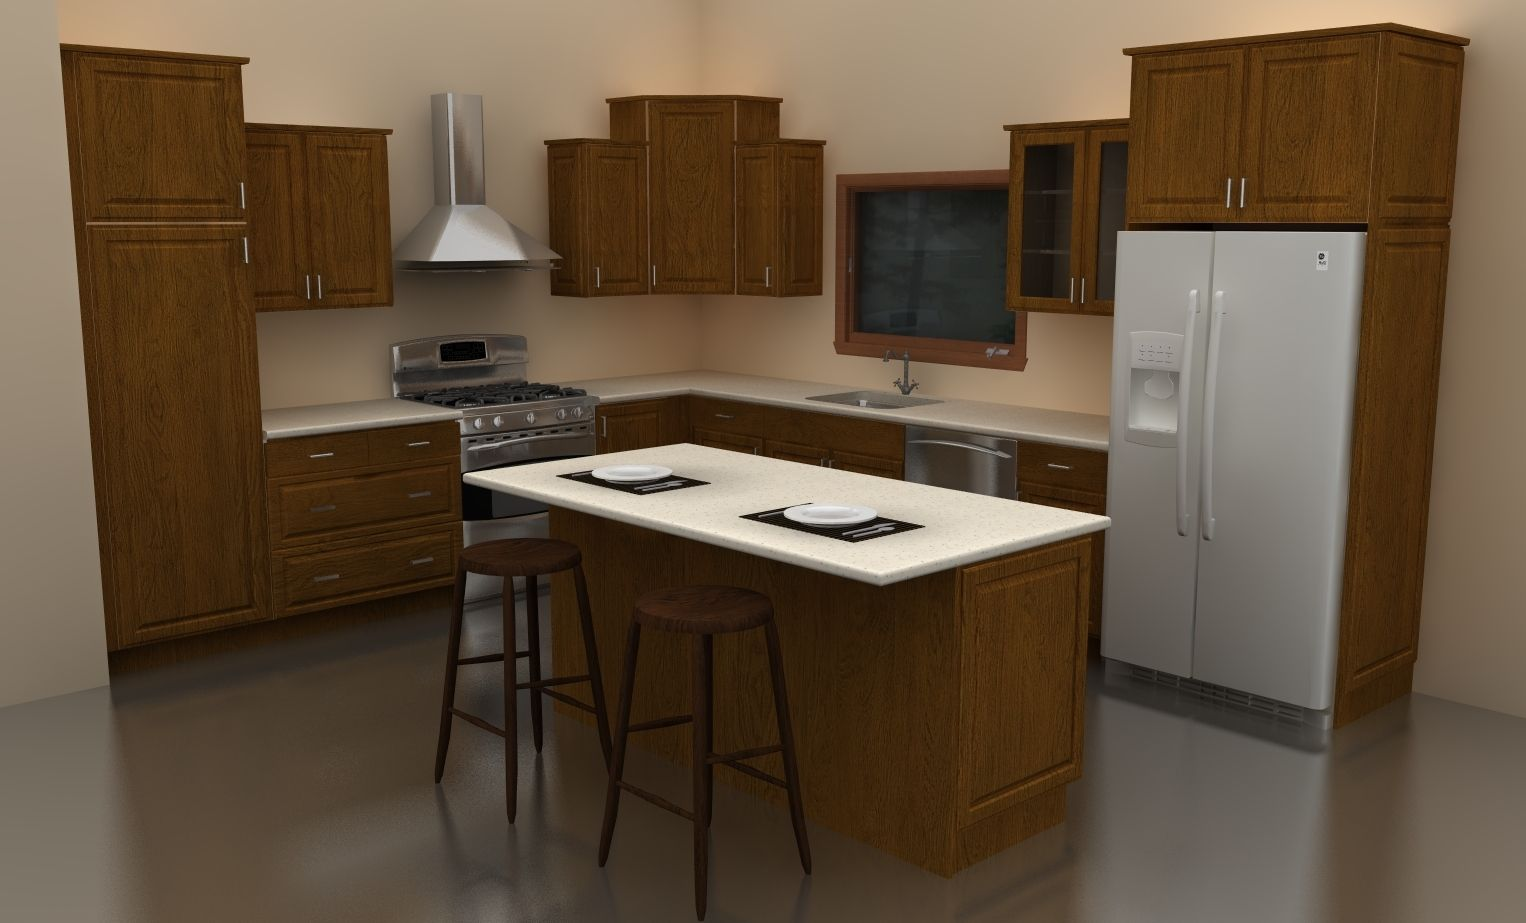 lighter cabinets and such but good layout lake house